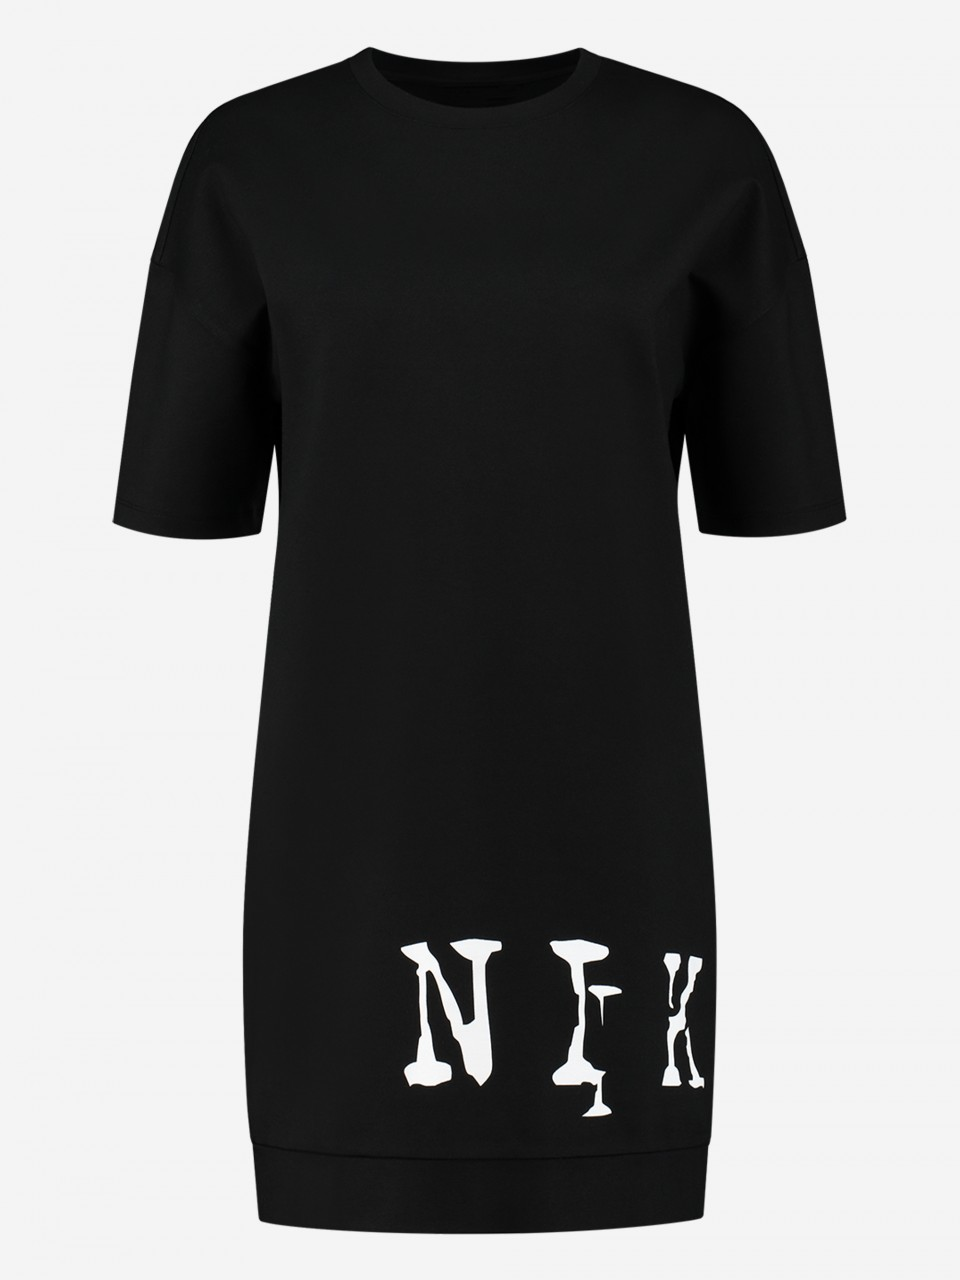 NIKKIE DRESS WITH NIKKIE LOGO BIG LOGO PUNTA DRESS